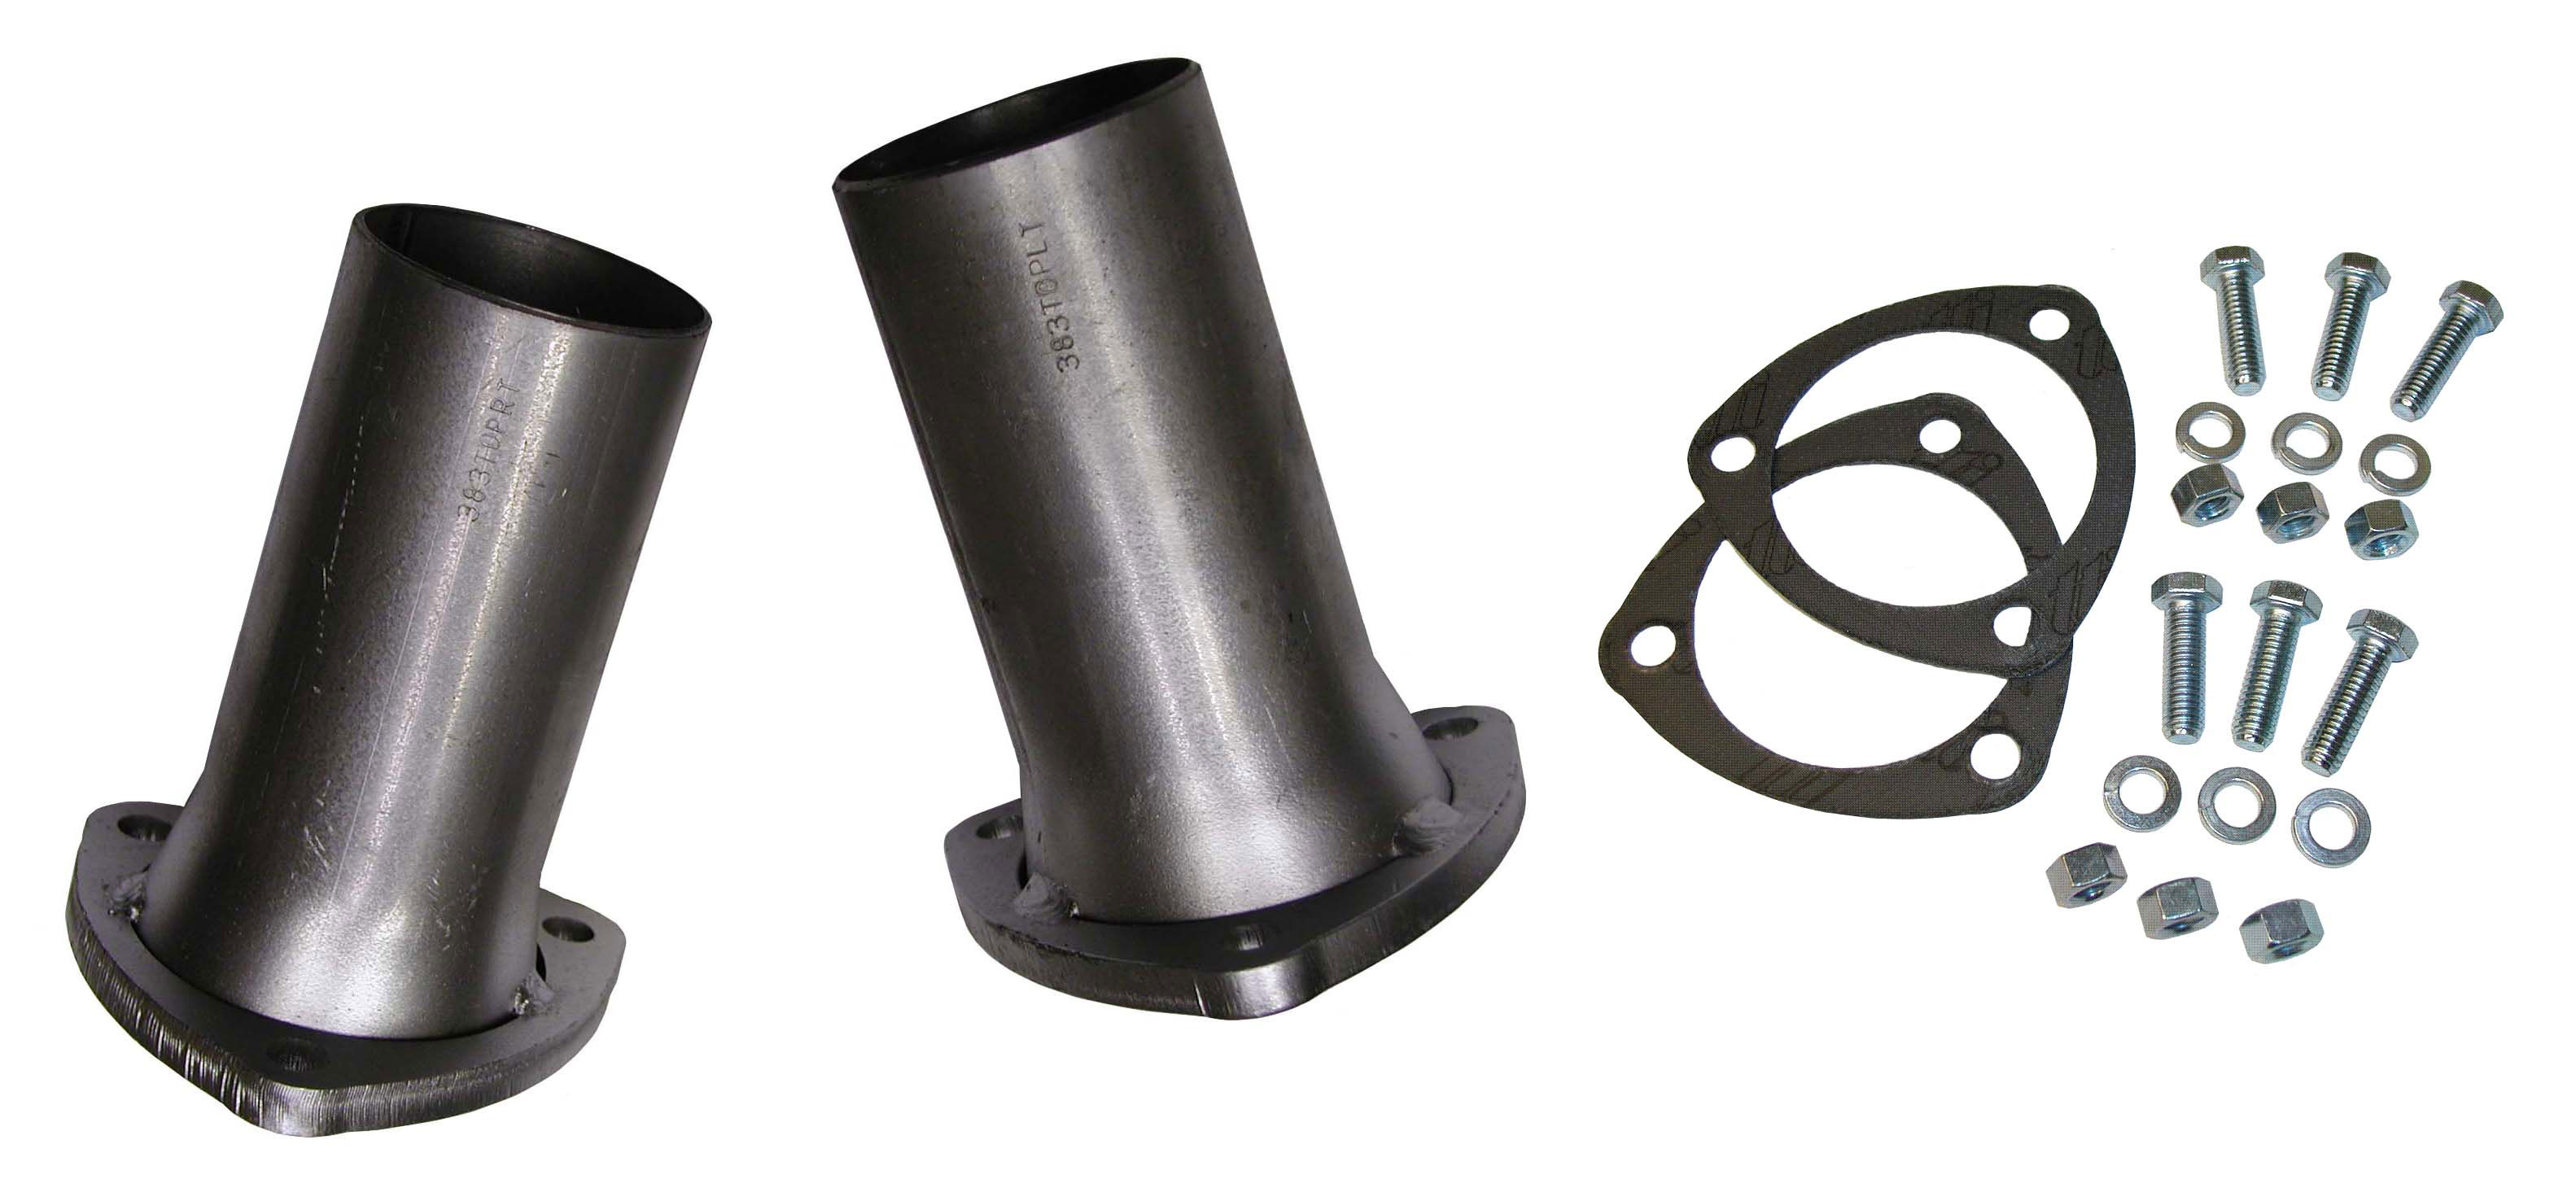 Quot long angled reducers for applications